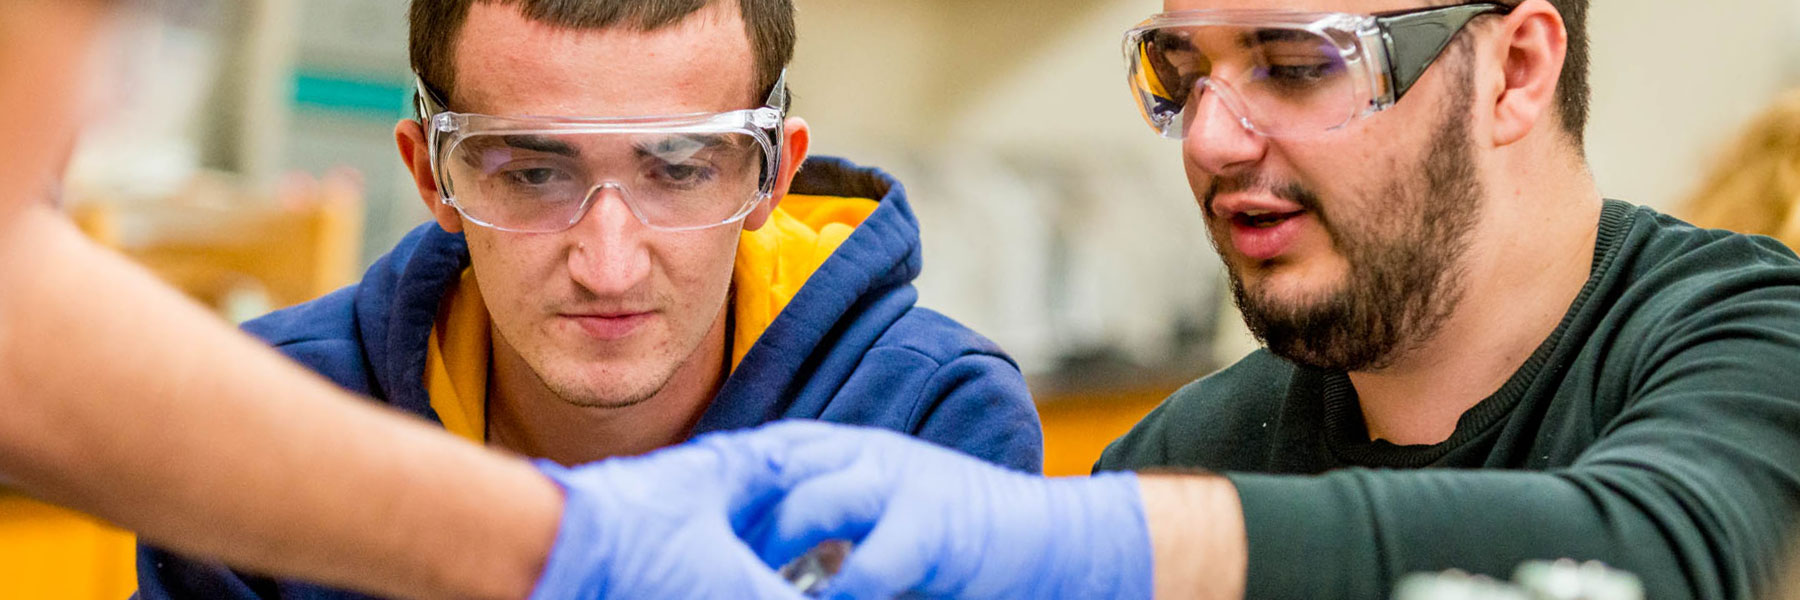 two male students with goggle and protective gloves handle objects in chemistry class